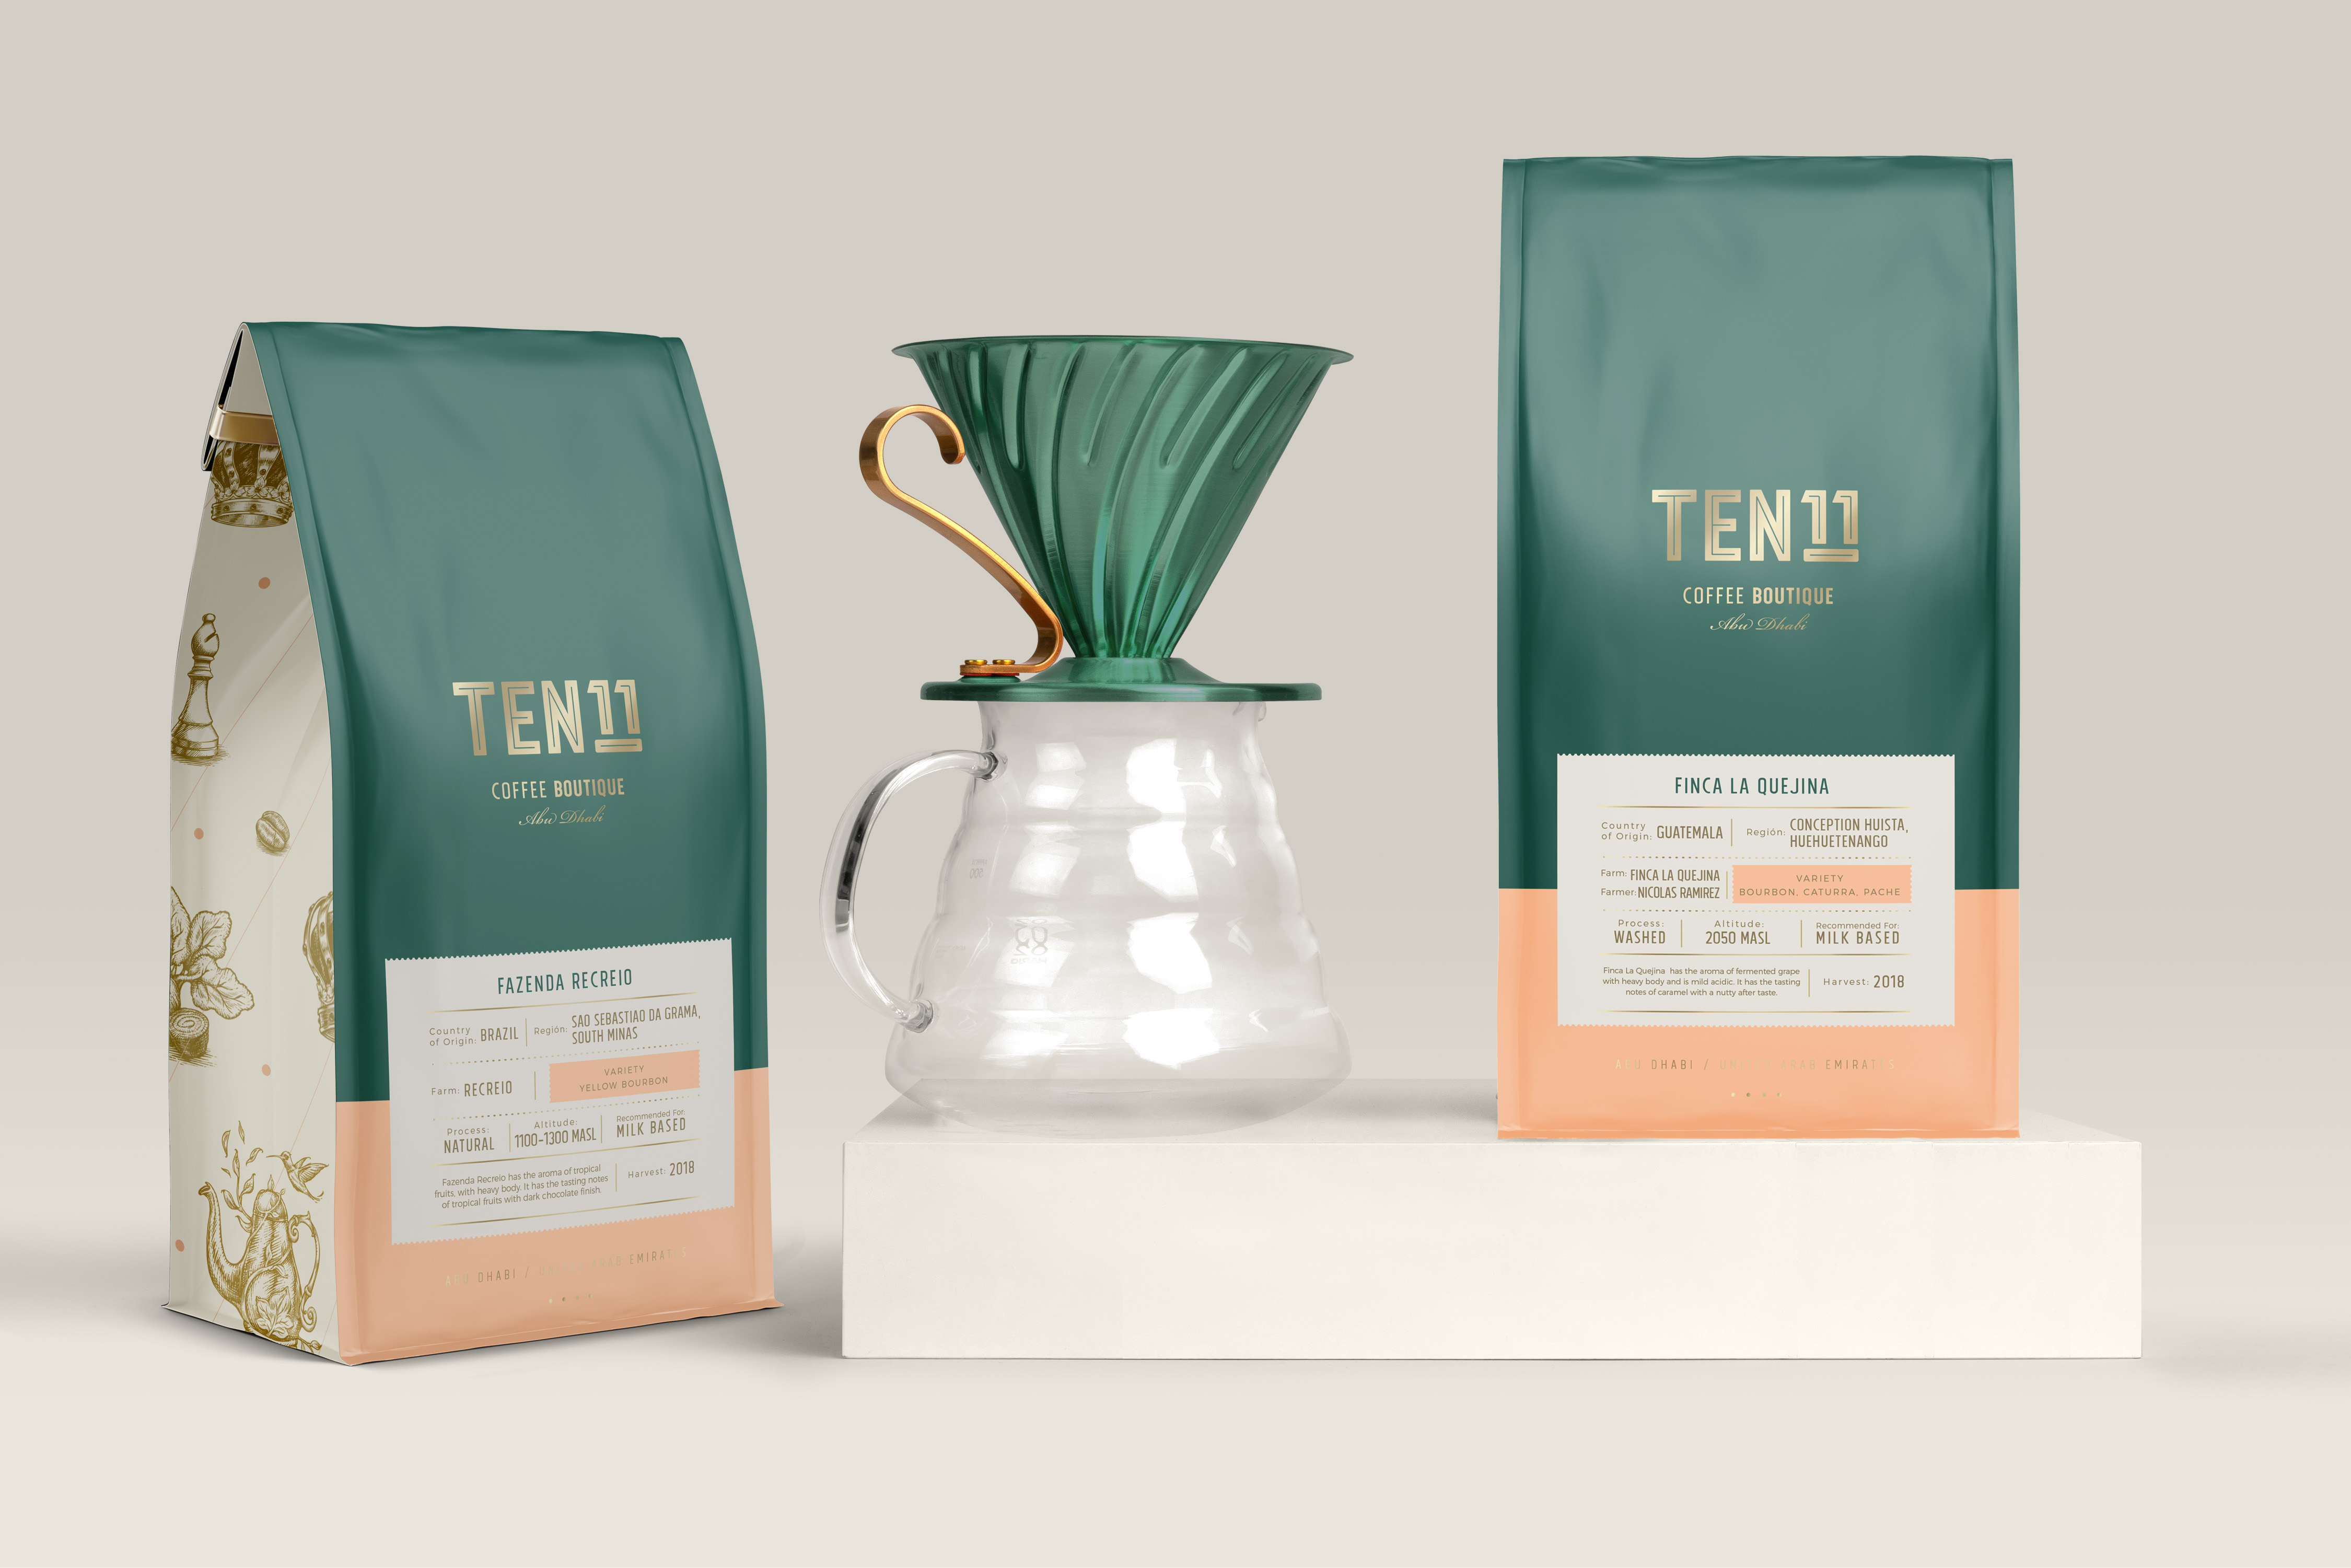 PurpleDash Creative Boutique Branding and Illustration for TEN11 Specialty Coffee Shop in Abu Dhabi